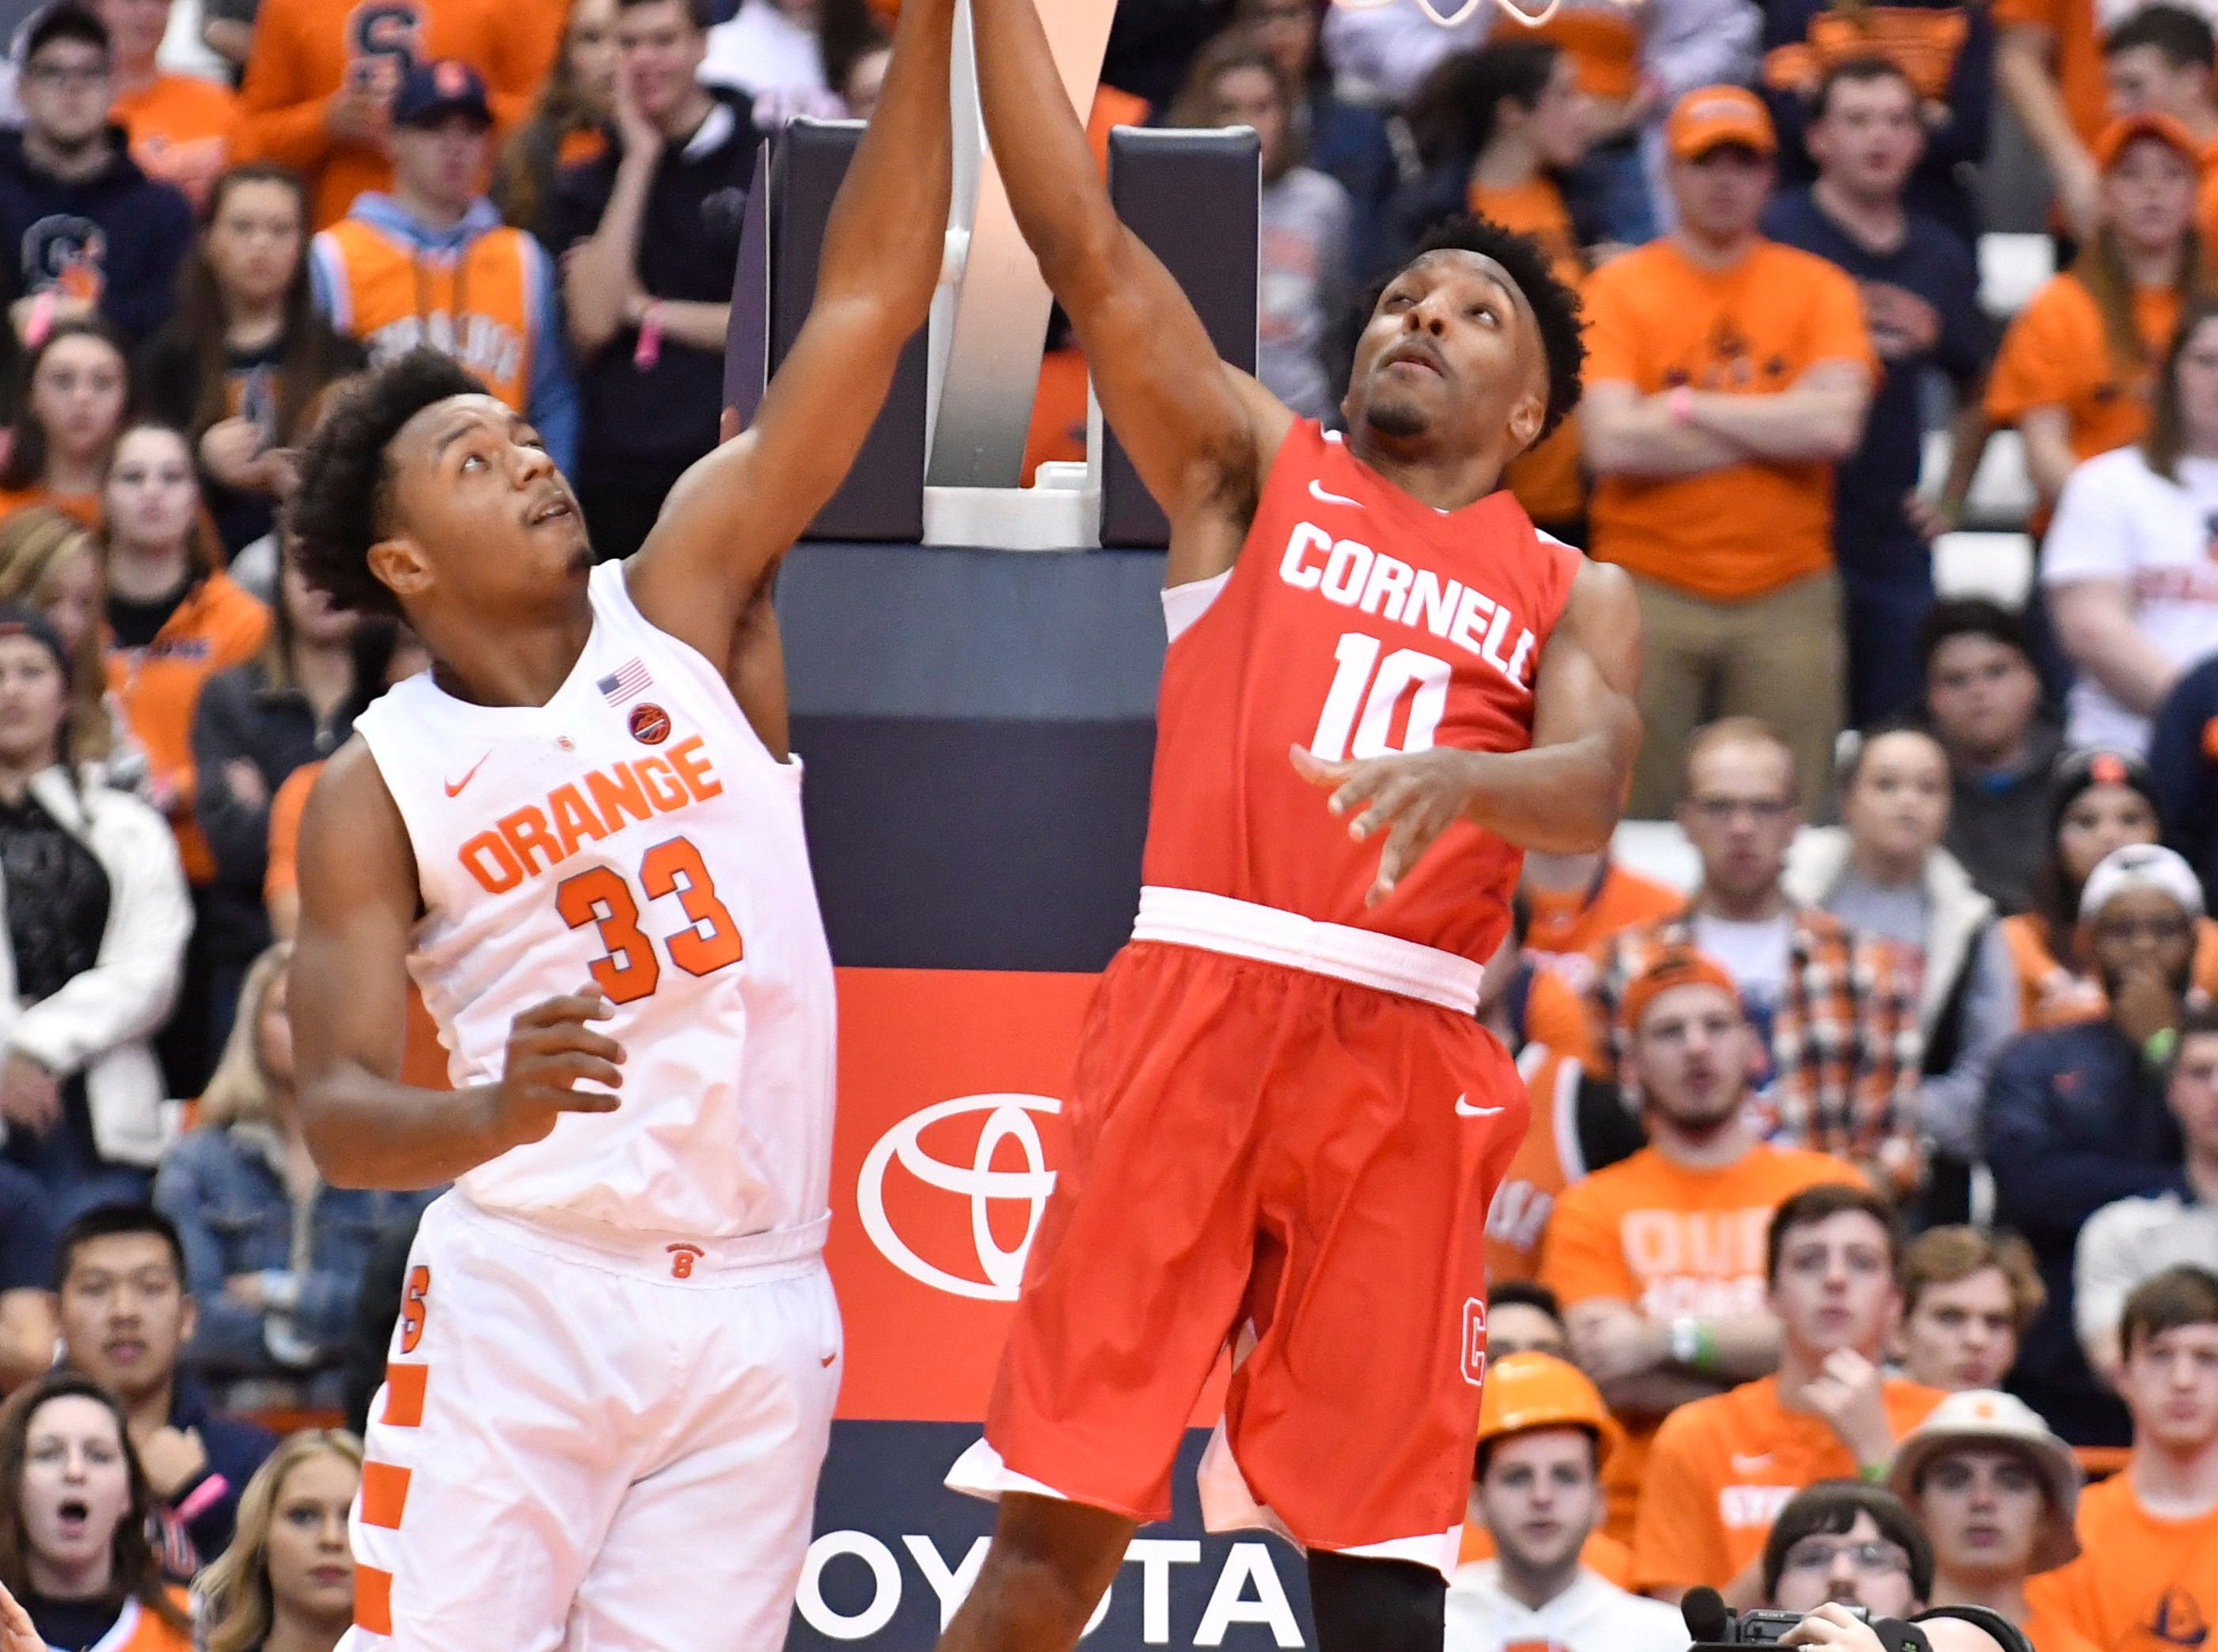 Dec 1, 2018; Syracuse, NY, USA; Cornell Big Red guard Matt Morgan (10) shoots the ball as Syracuse Orange forward Elijah Hughes (33) defends during the first half at the Carrier Dome. Mandatory Credit: Mark Konezny-USA TODAY Sports